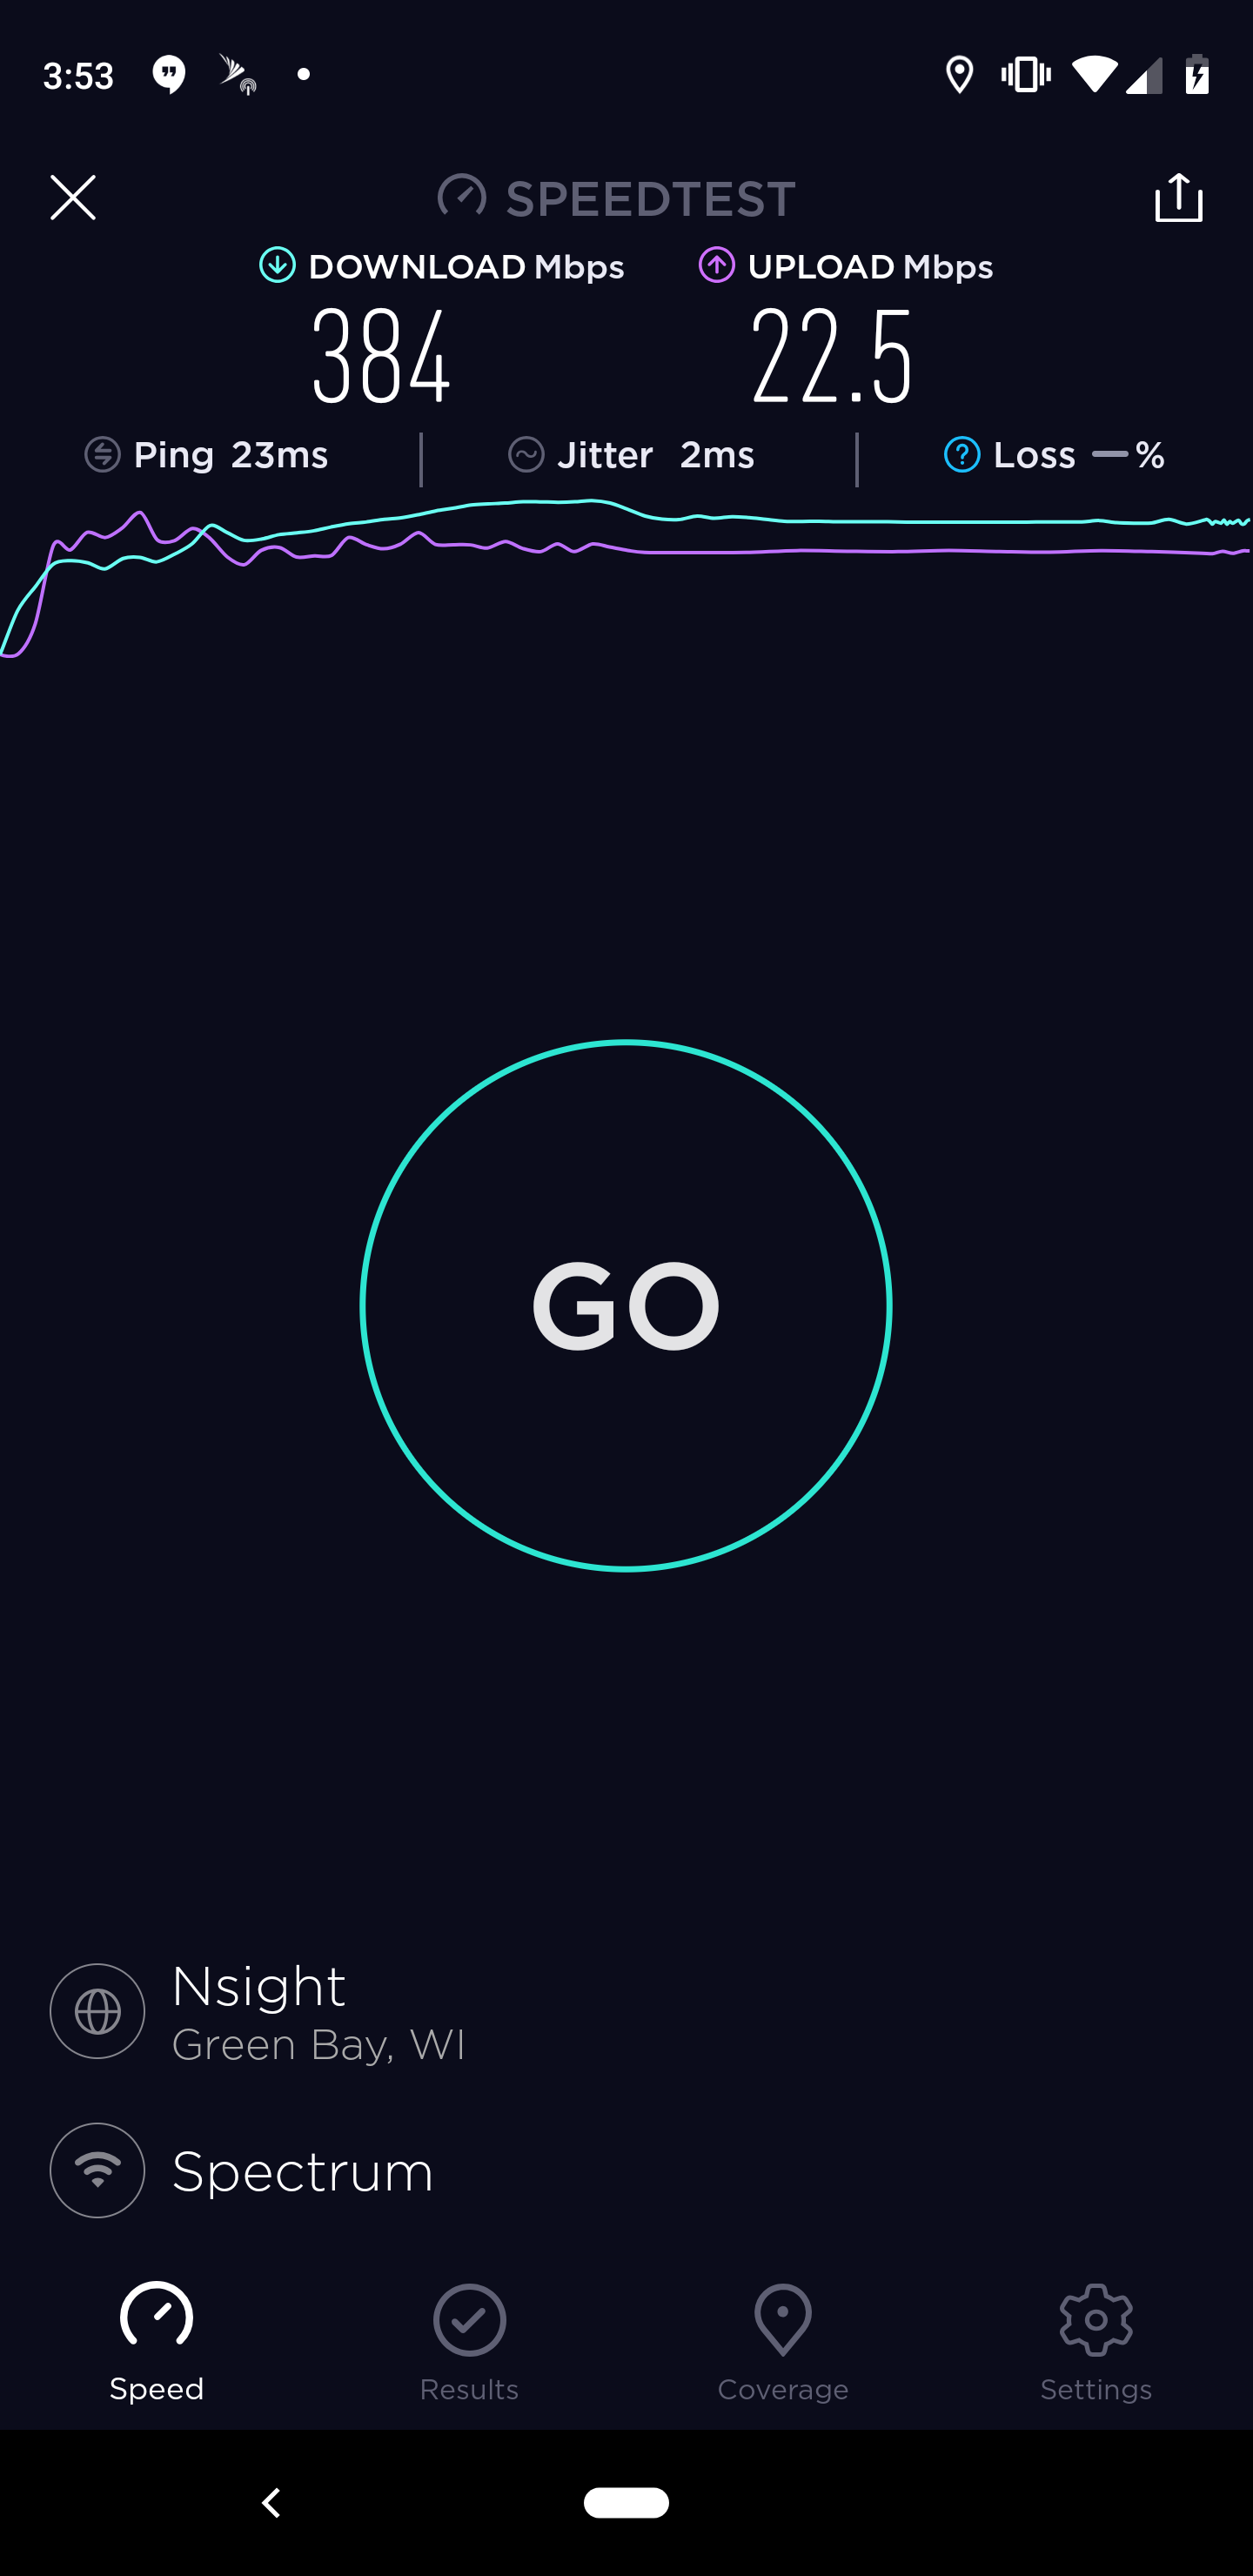 400 Mbps Spectrum connection  This speed test was done over